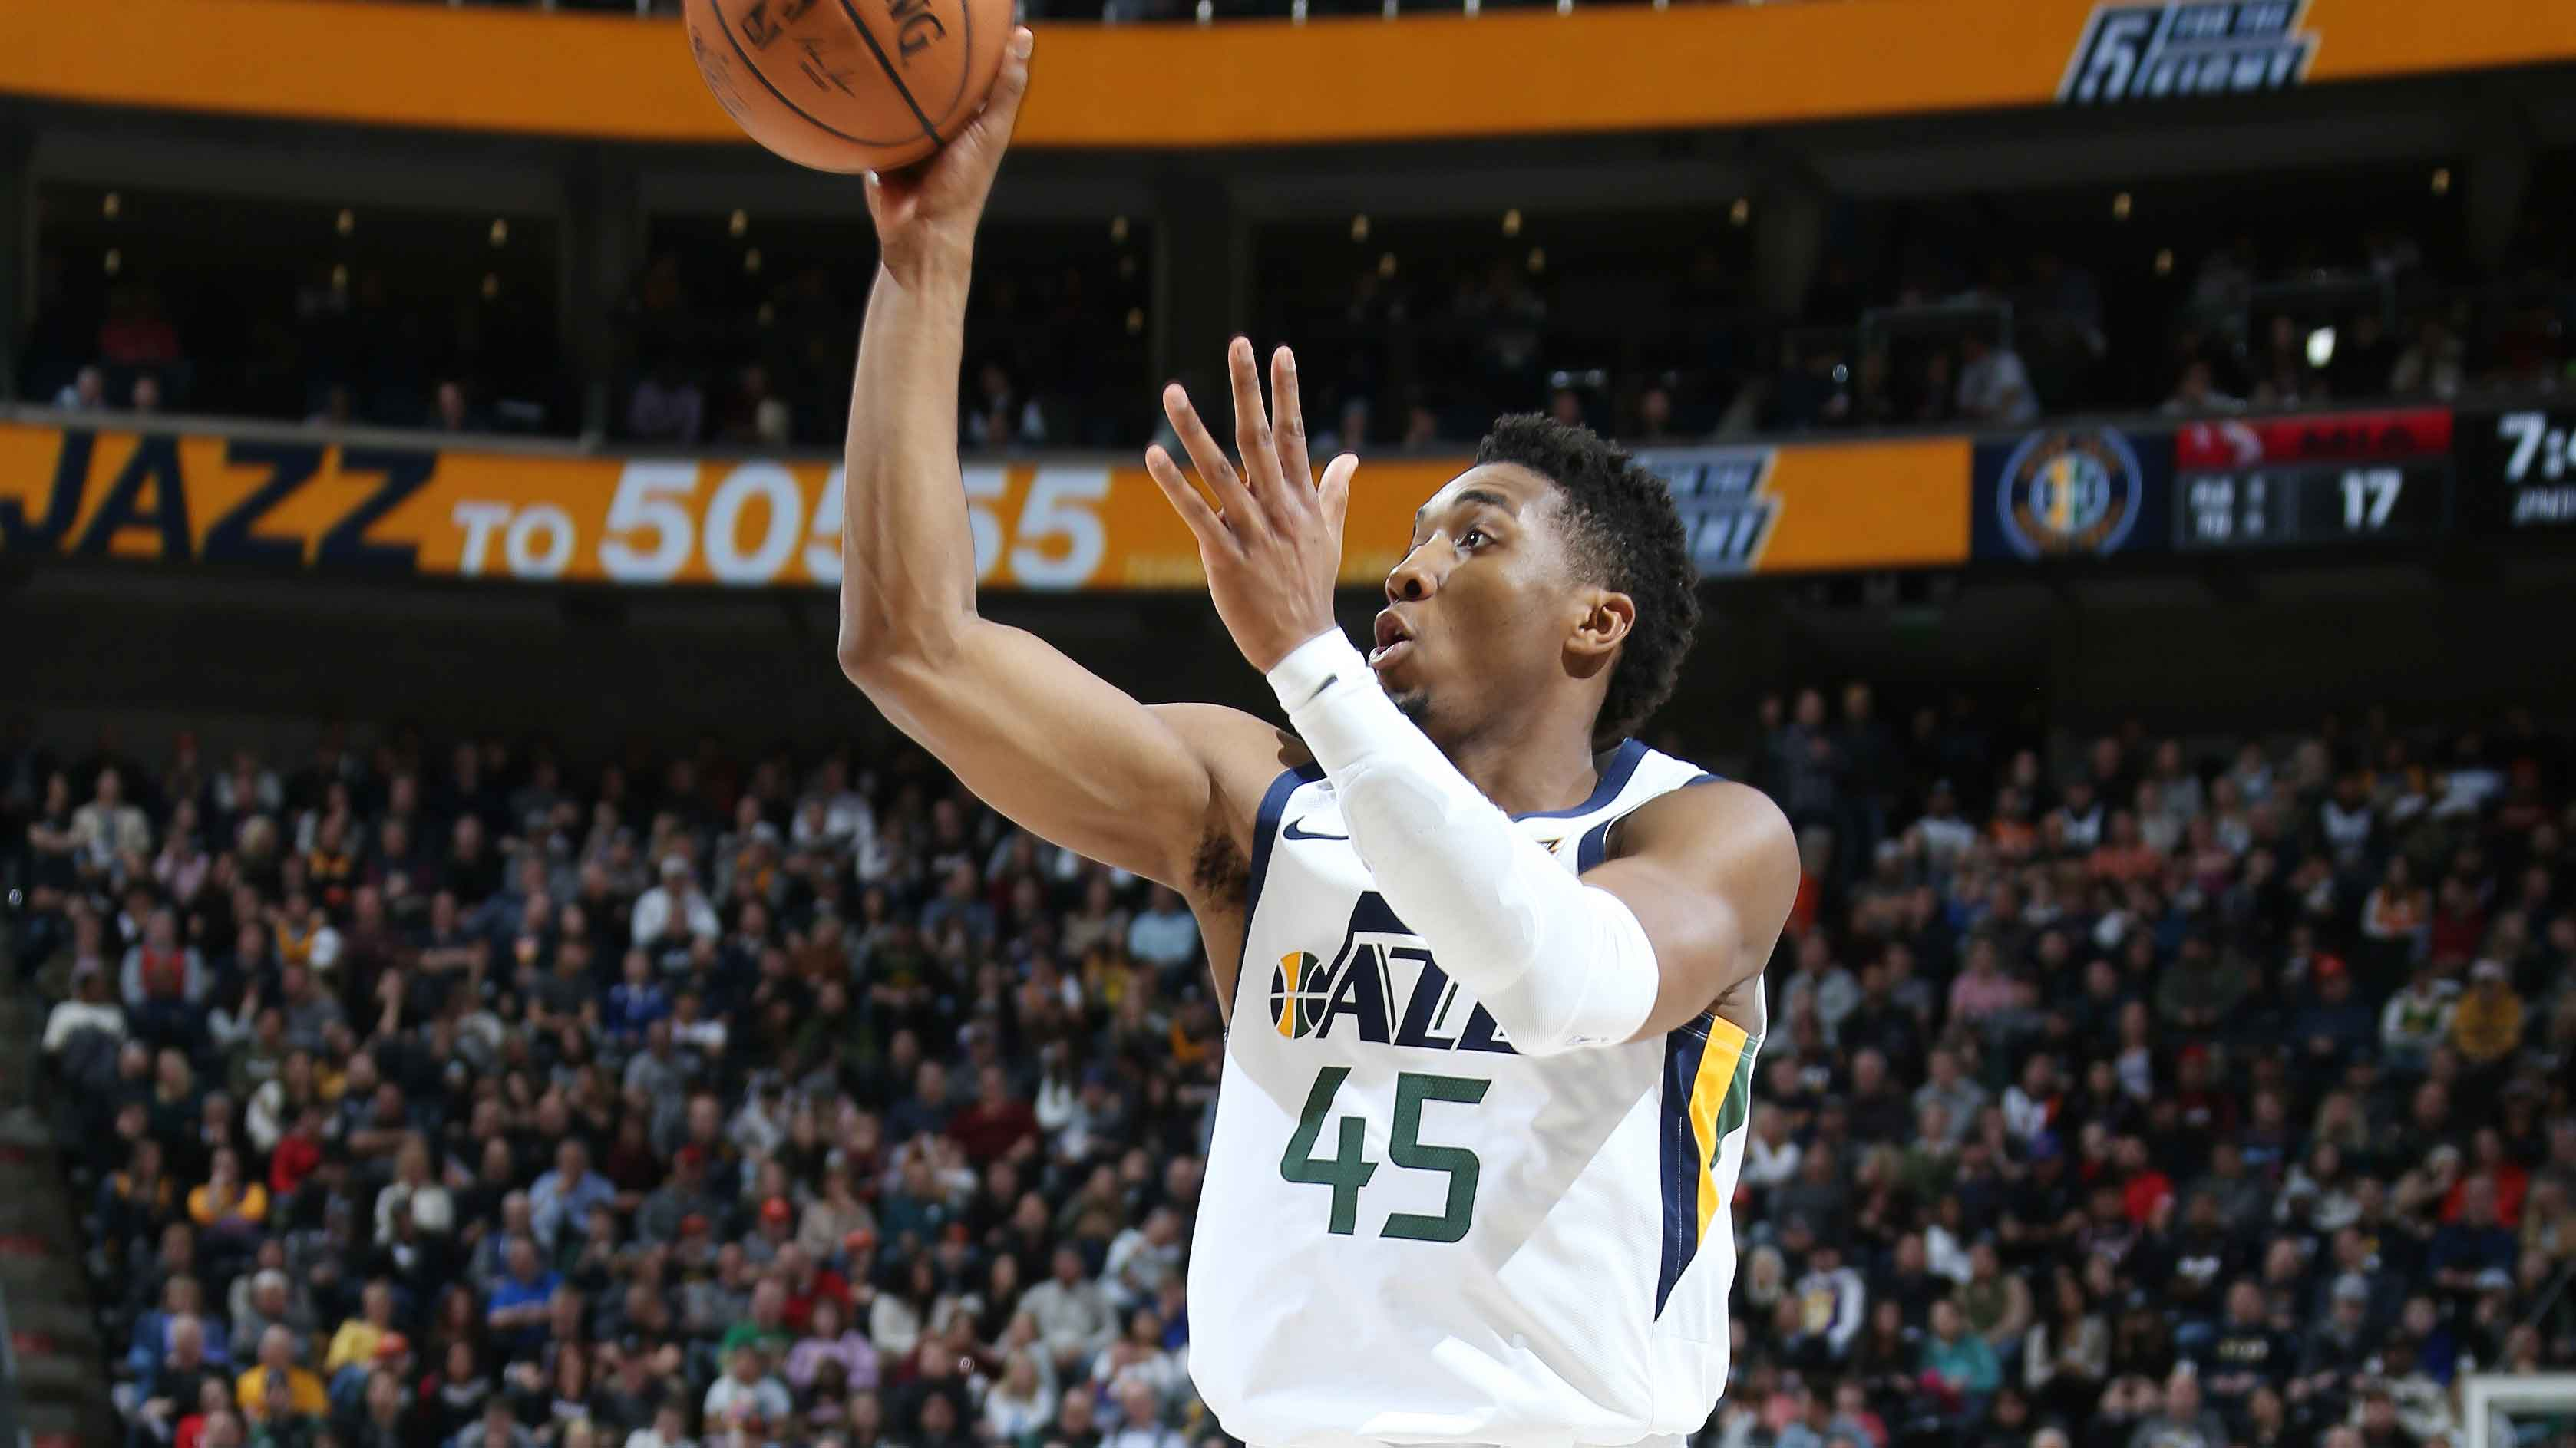 GAME RECAP: Jazz 111, Heat 84